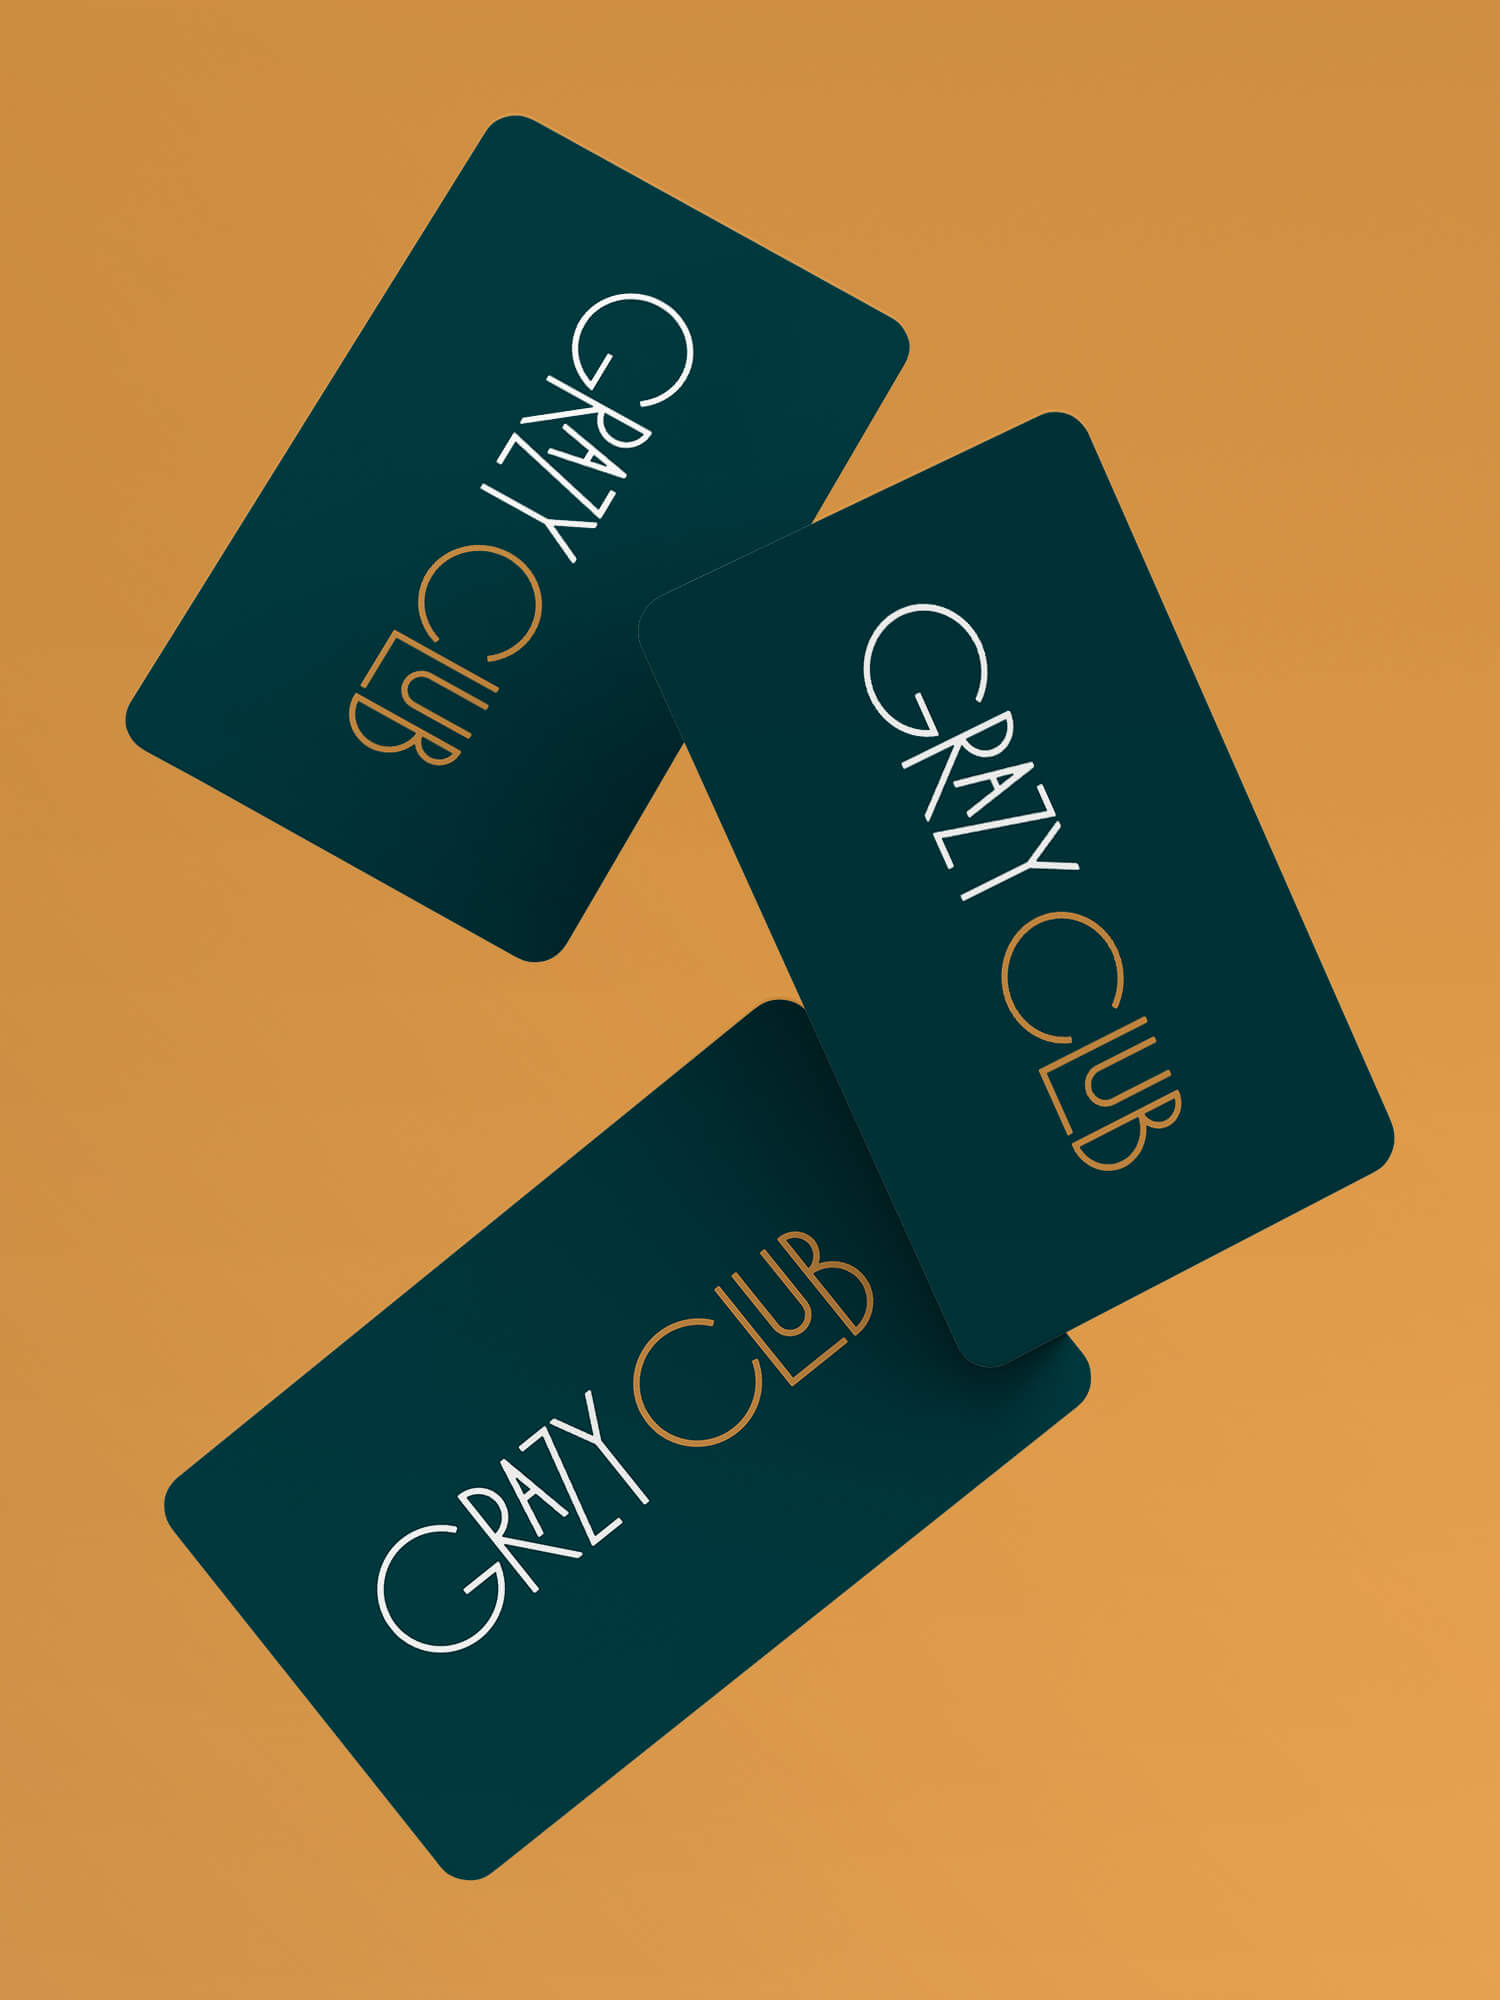 Three Grazy Club membership cards falling from above